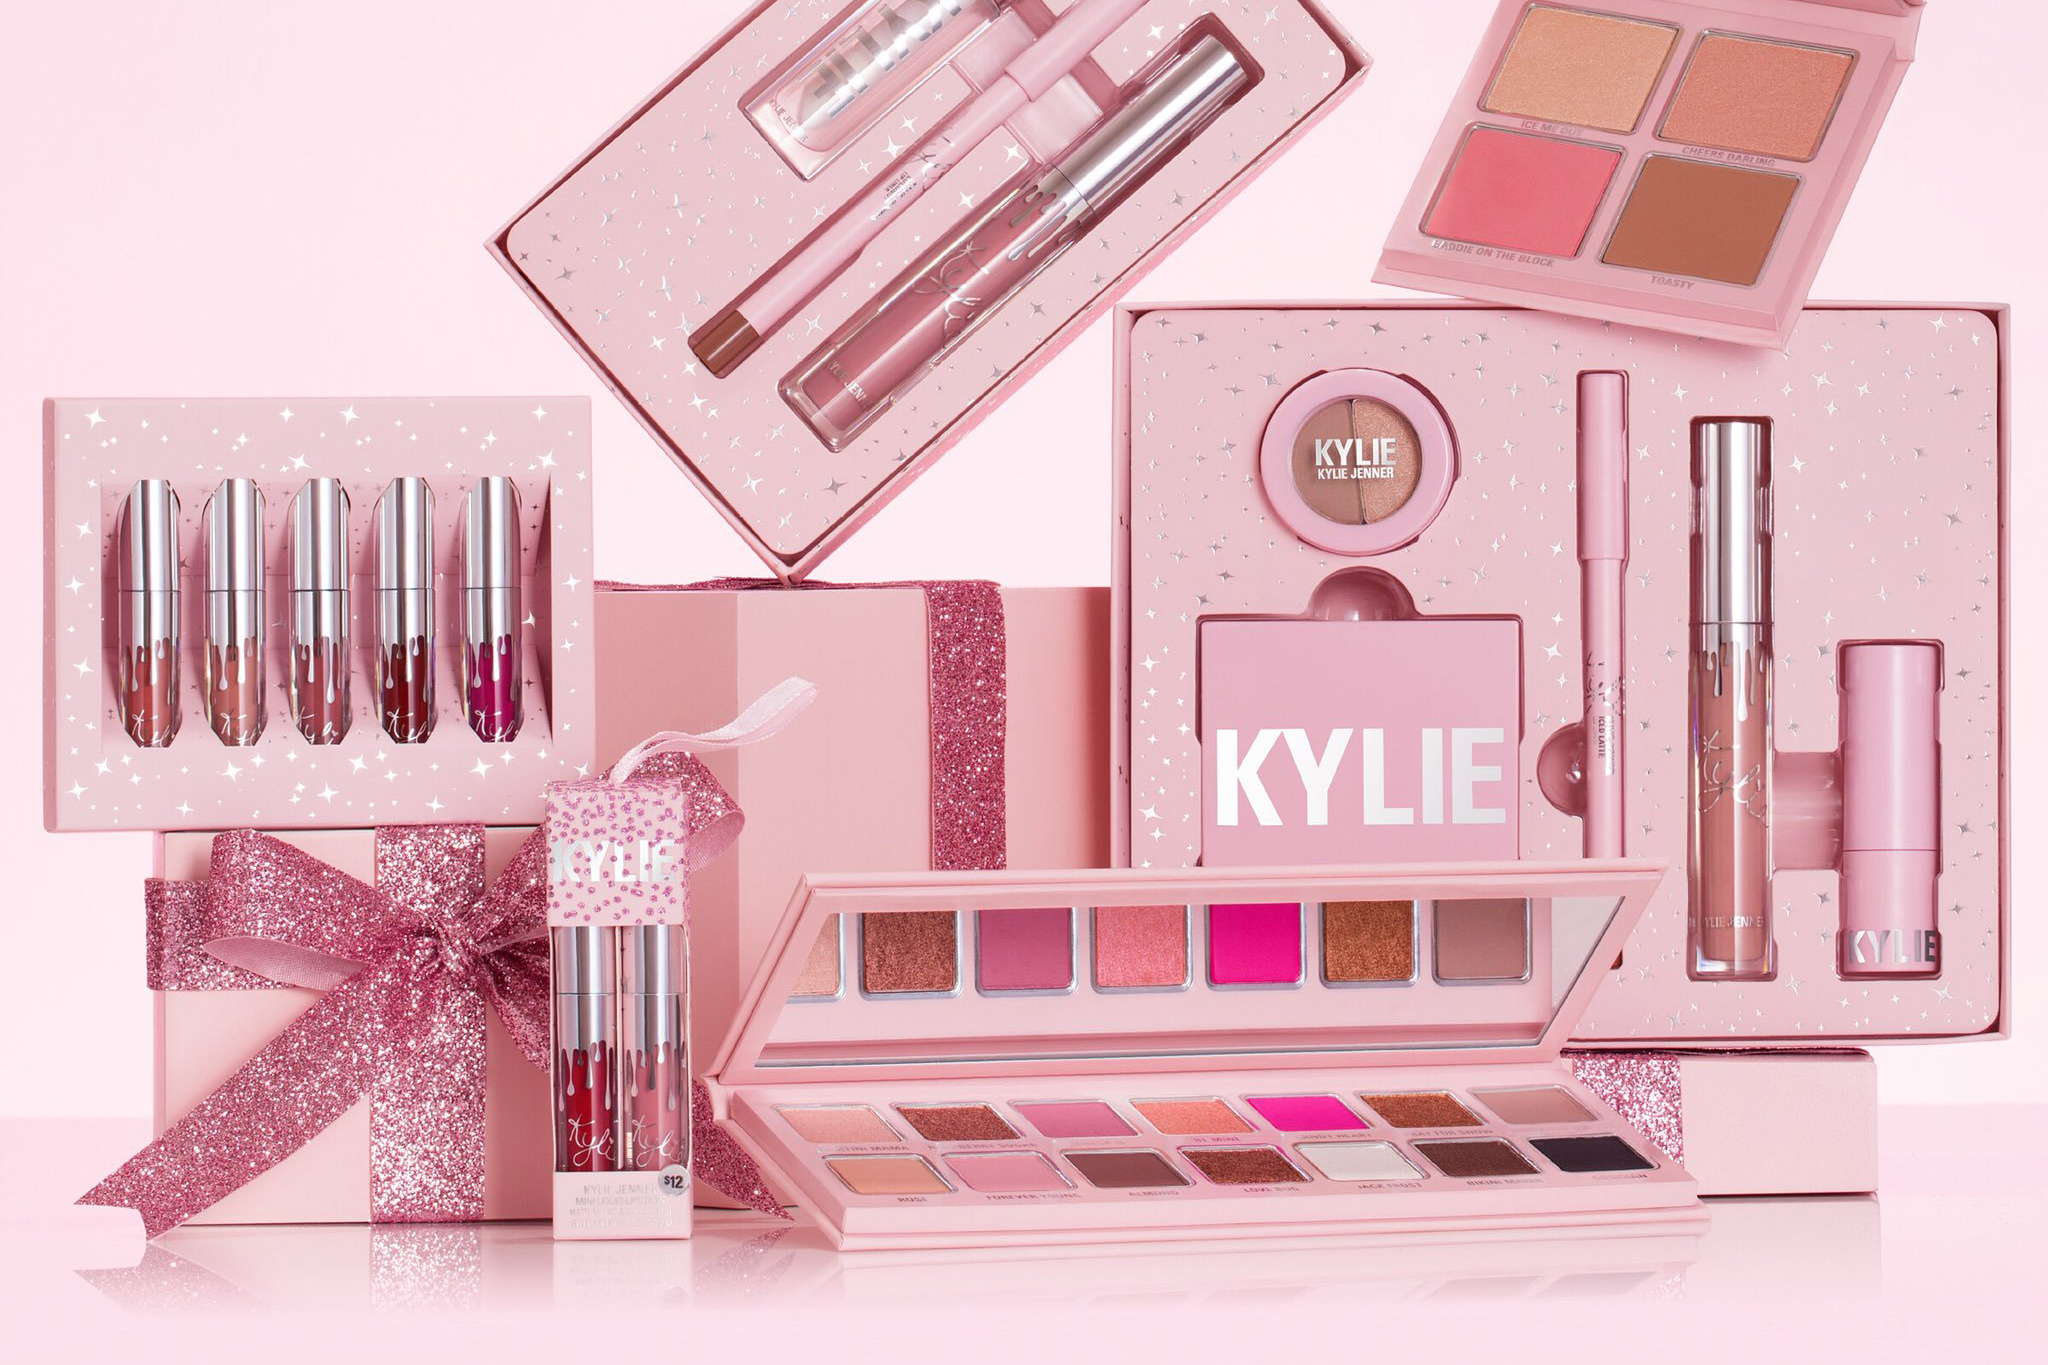 Kylie Jenner Kylie Cosmetics celebrity line of makeup and skincare